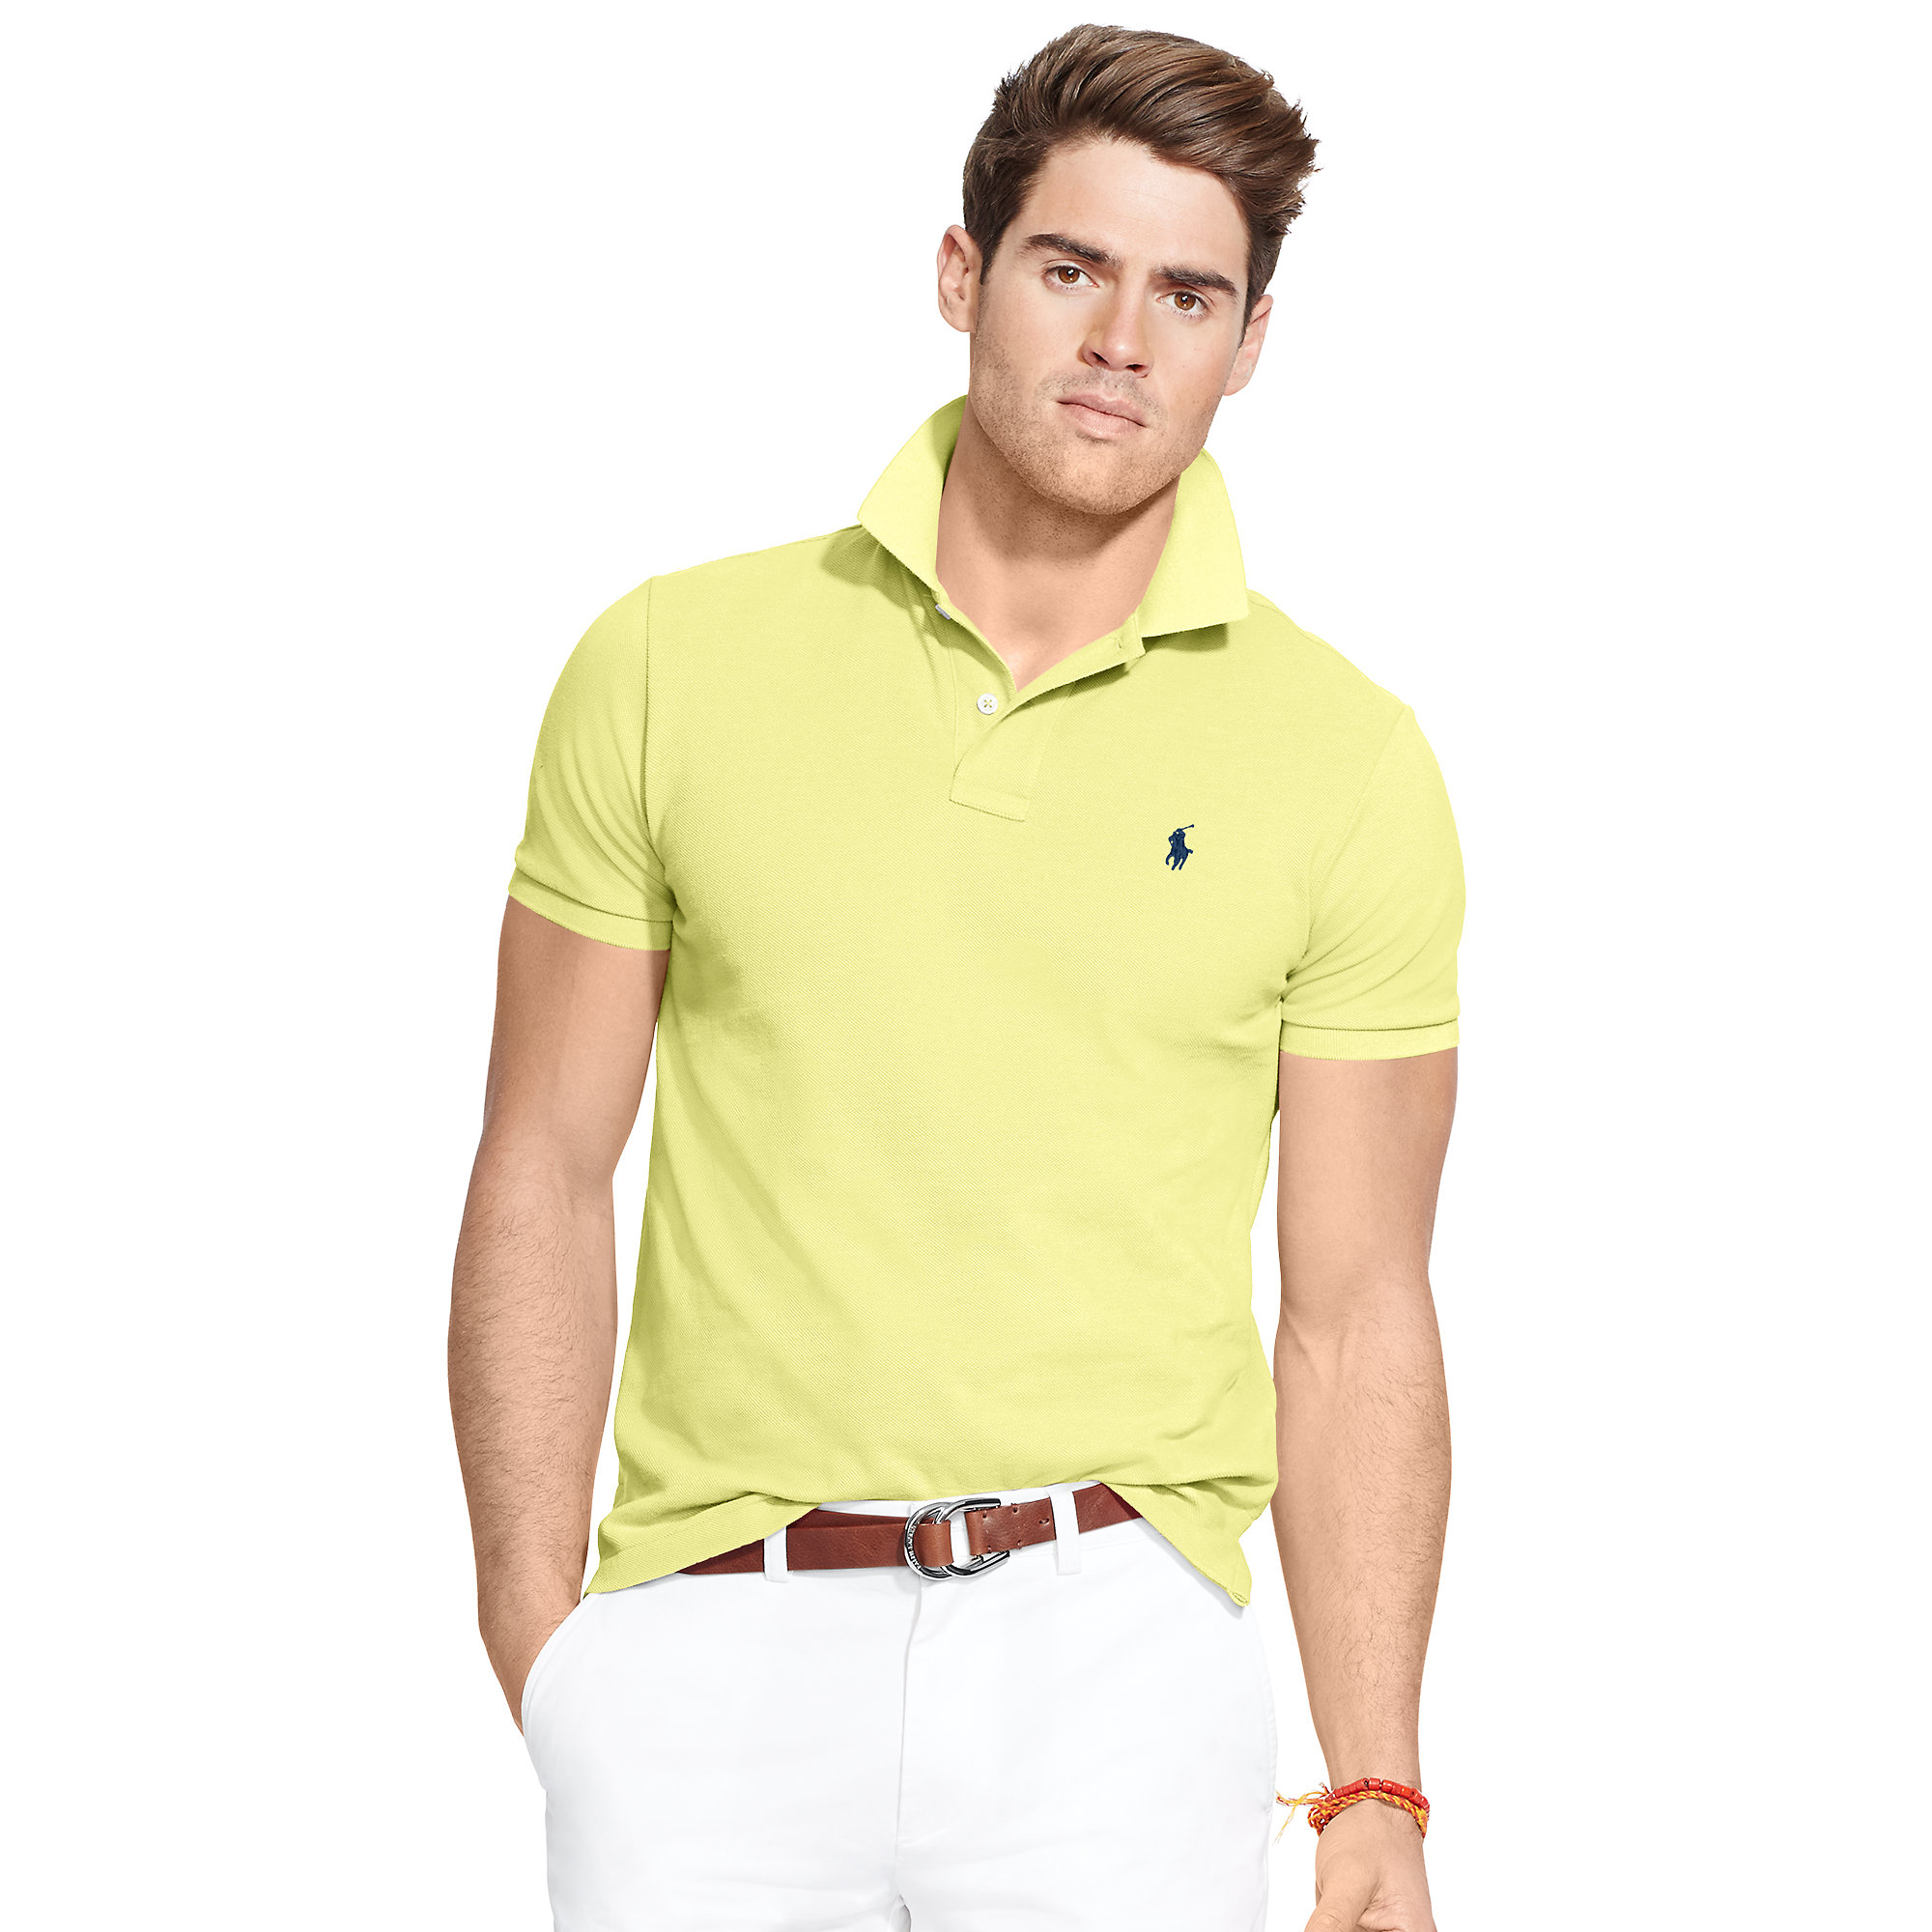 68a04a52 Polo Ralph Lauren Classic Fit Mesh Polo Shirt in Yellow for Men - Lyst